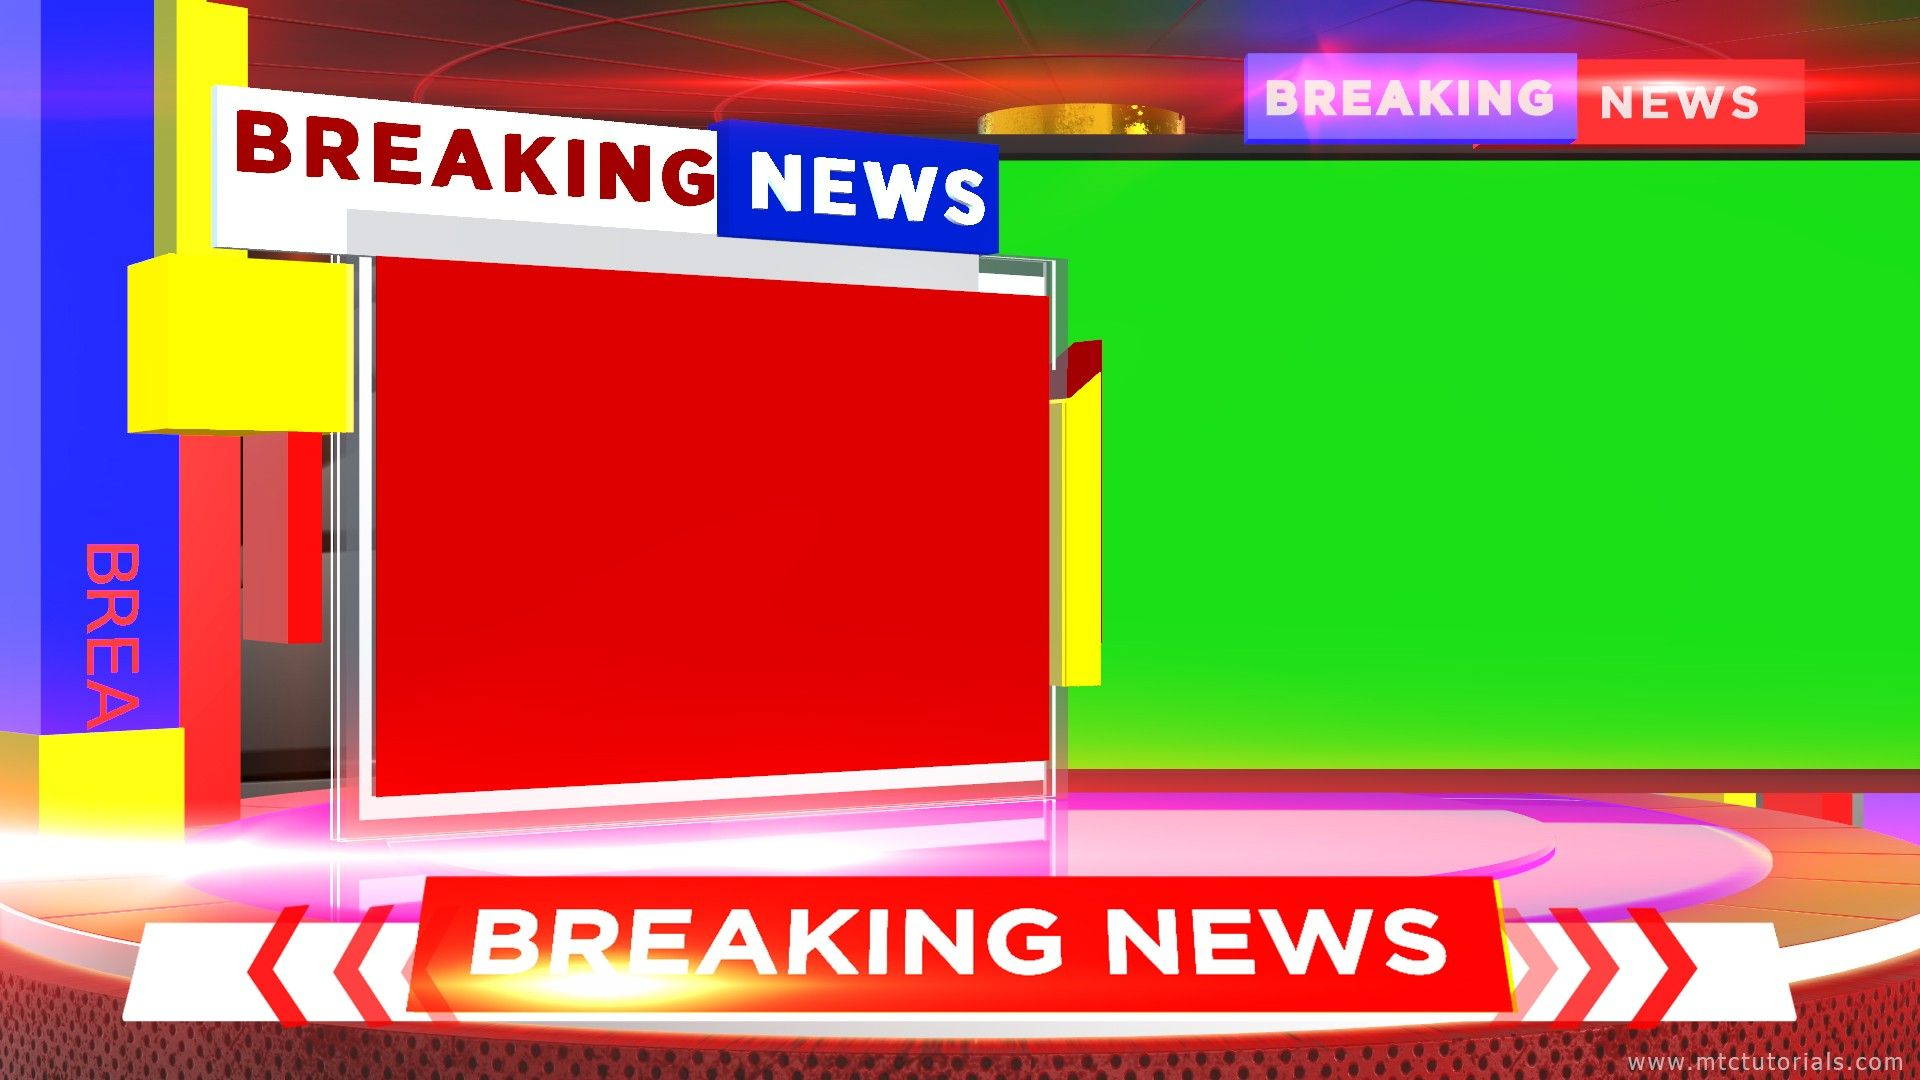 Adobe After Effects Free Breaking News Templates Mtc Tutorials Photoshop Templates Free Templates Breaking News After effects news template free